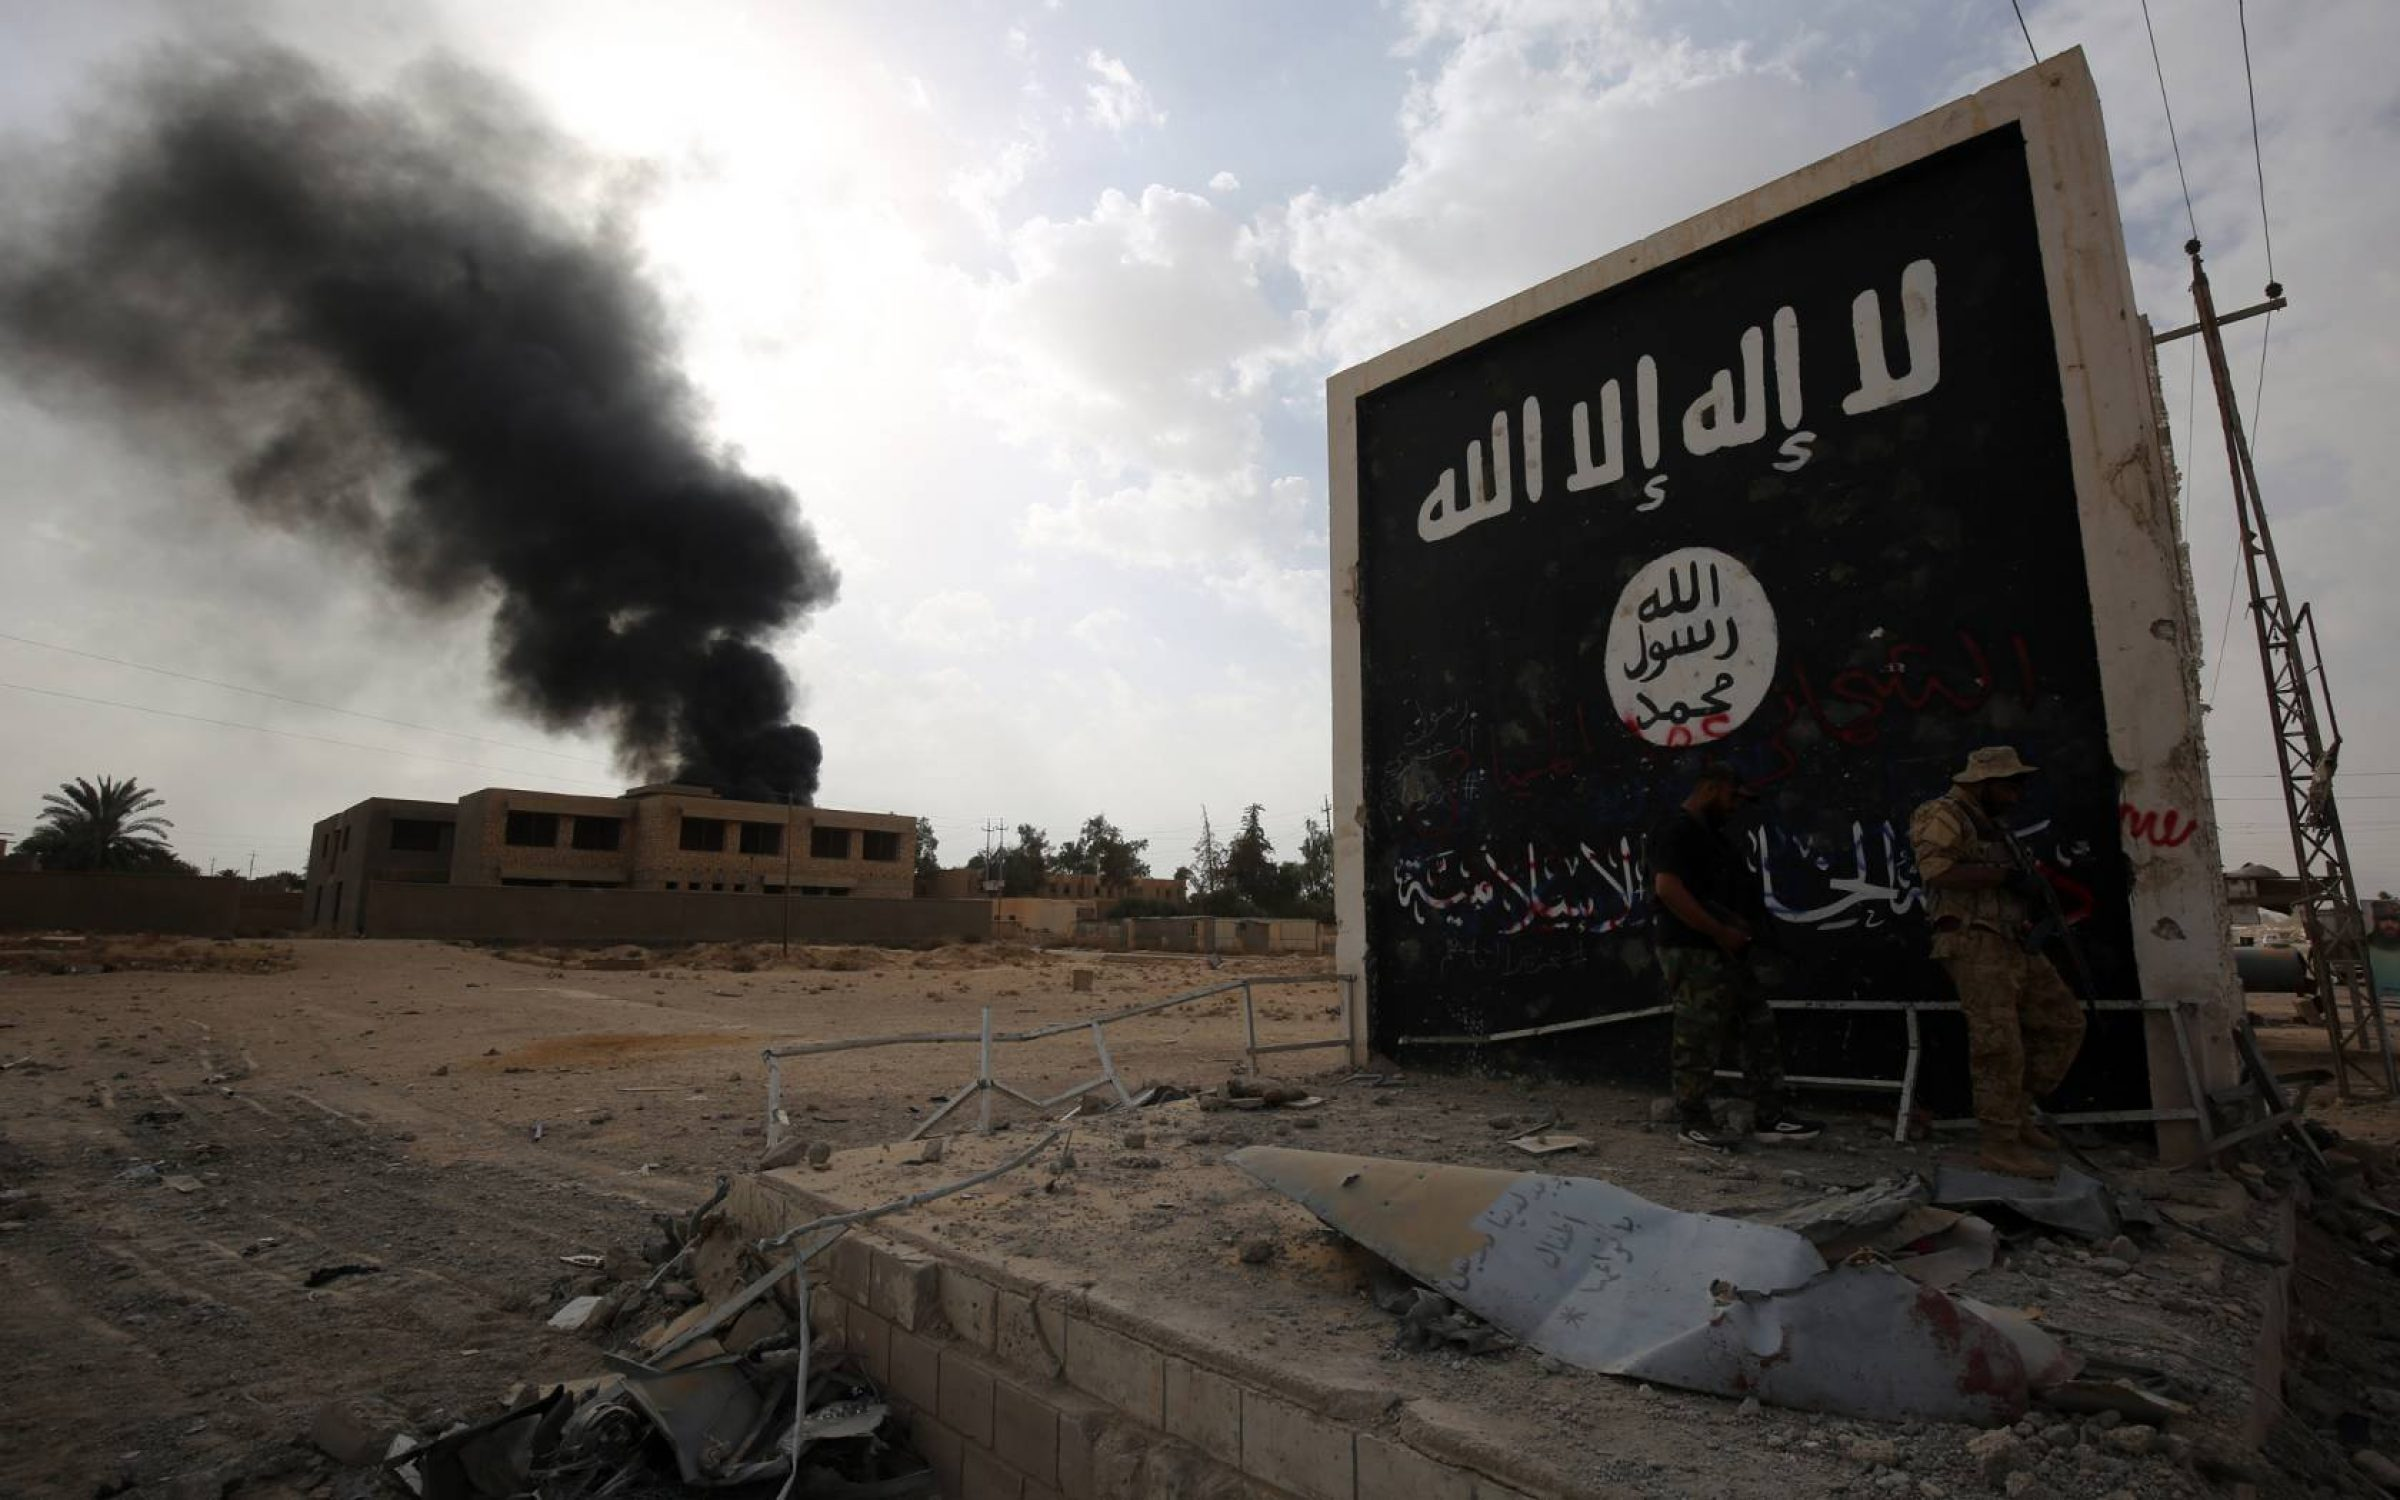 Iraqi fighters of the Hashed al-Shaabi (Popular Mobilisation units) stand next to a wall bearing the Islamic State (IS) group flag as they enter the city of al-Qaim, in Iraq's western Anbar province.